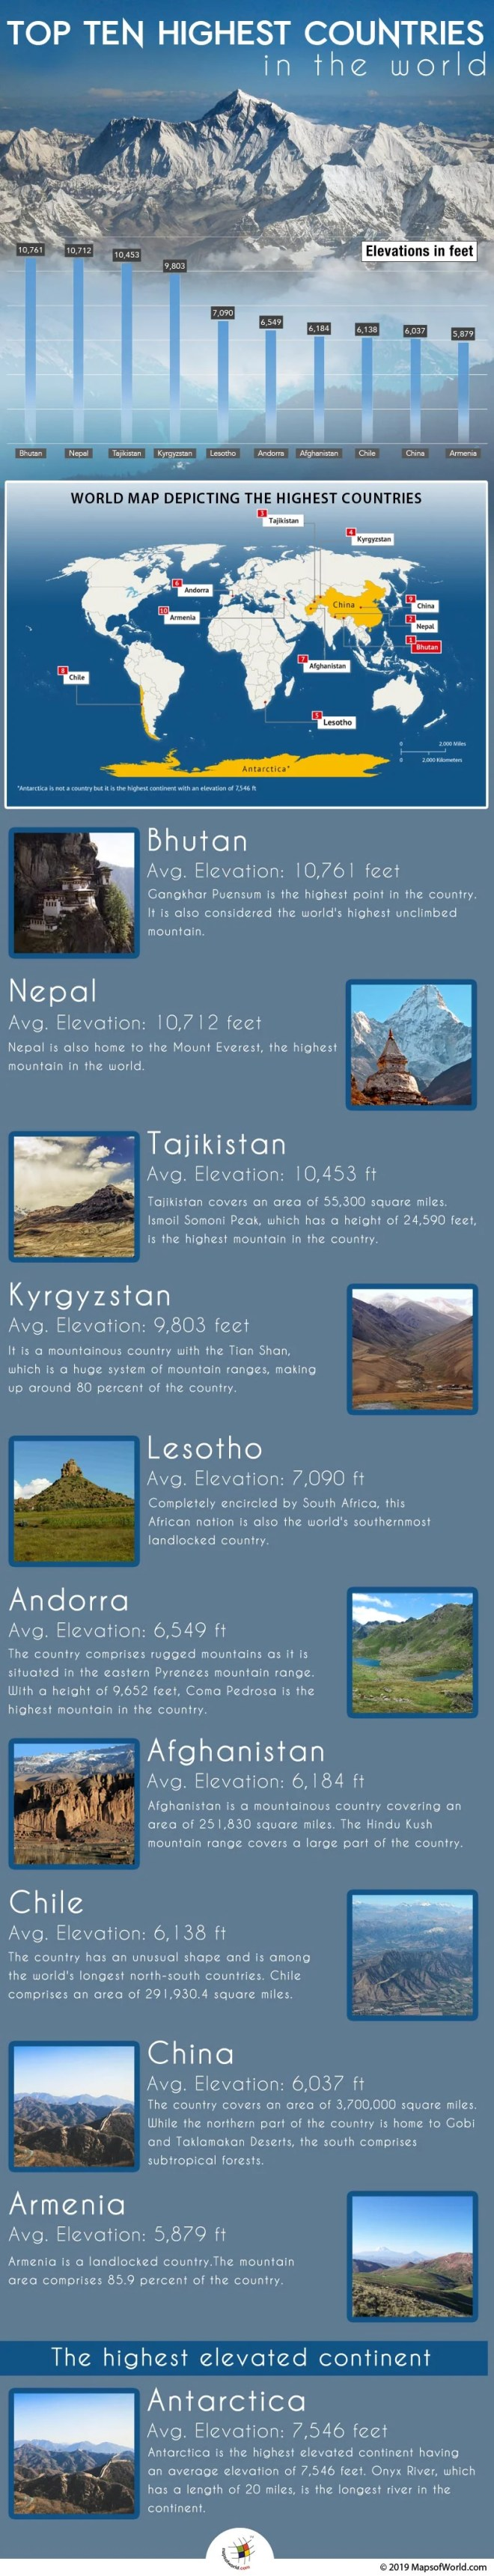 Infographic Showing Countries with The Highest Average Elevation in The World